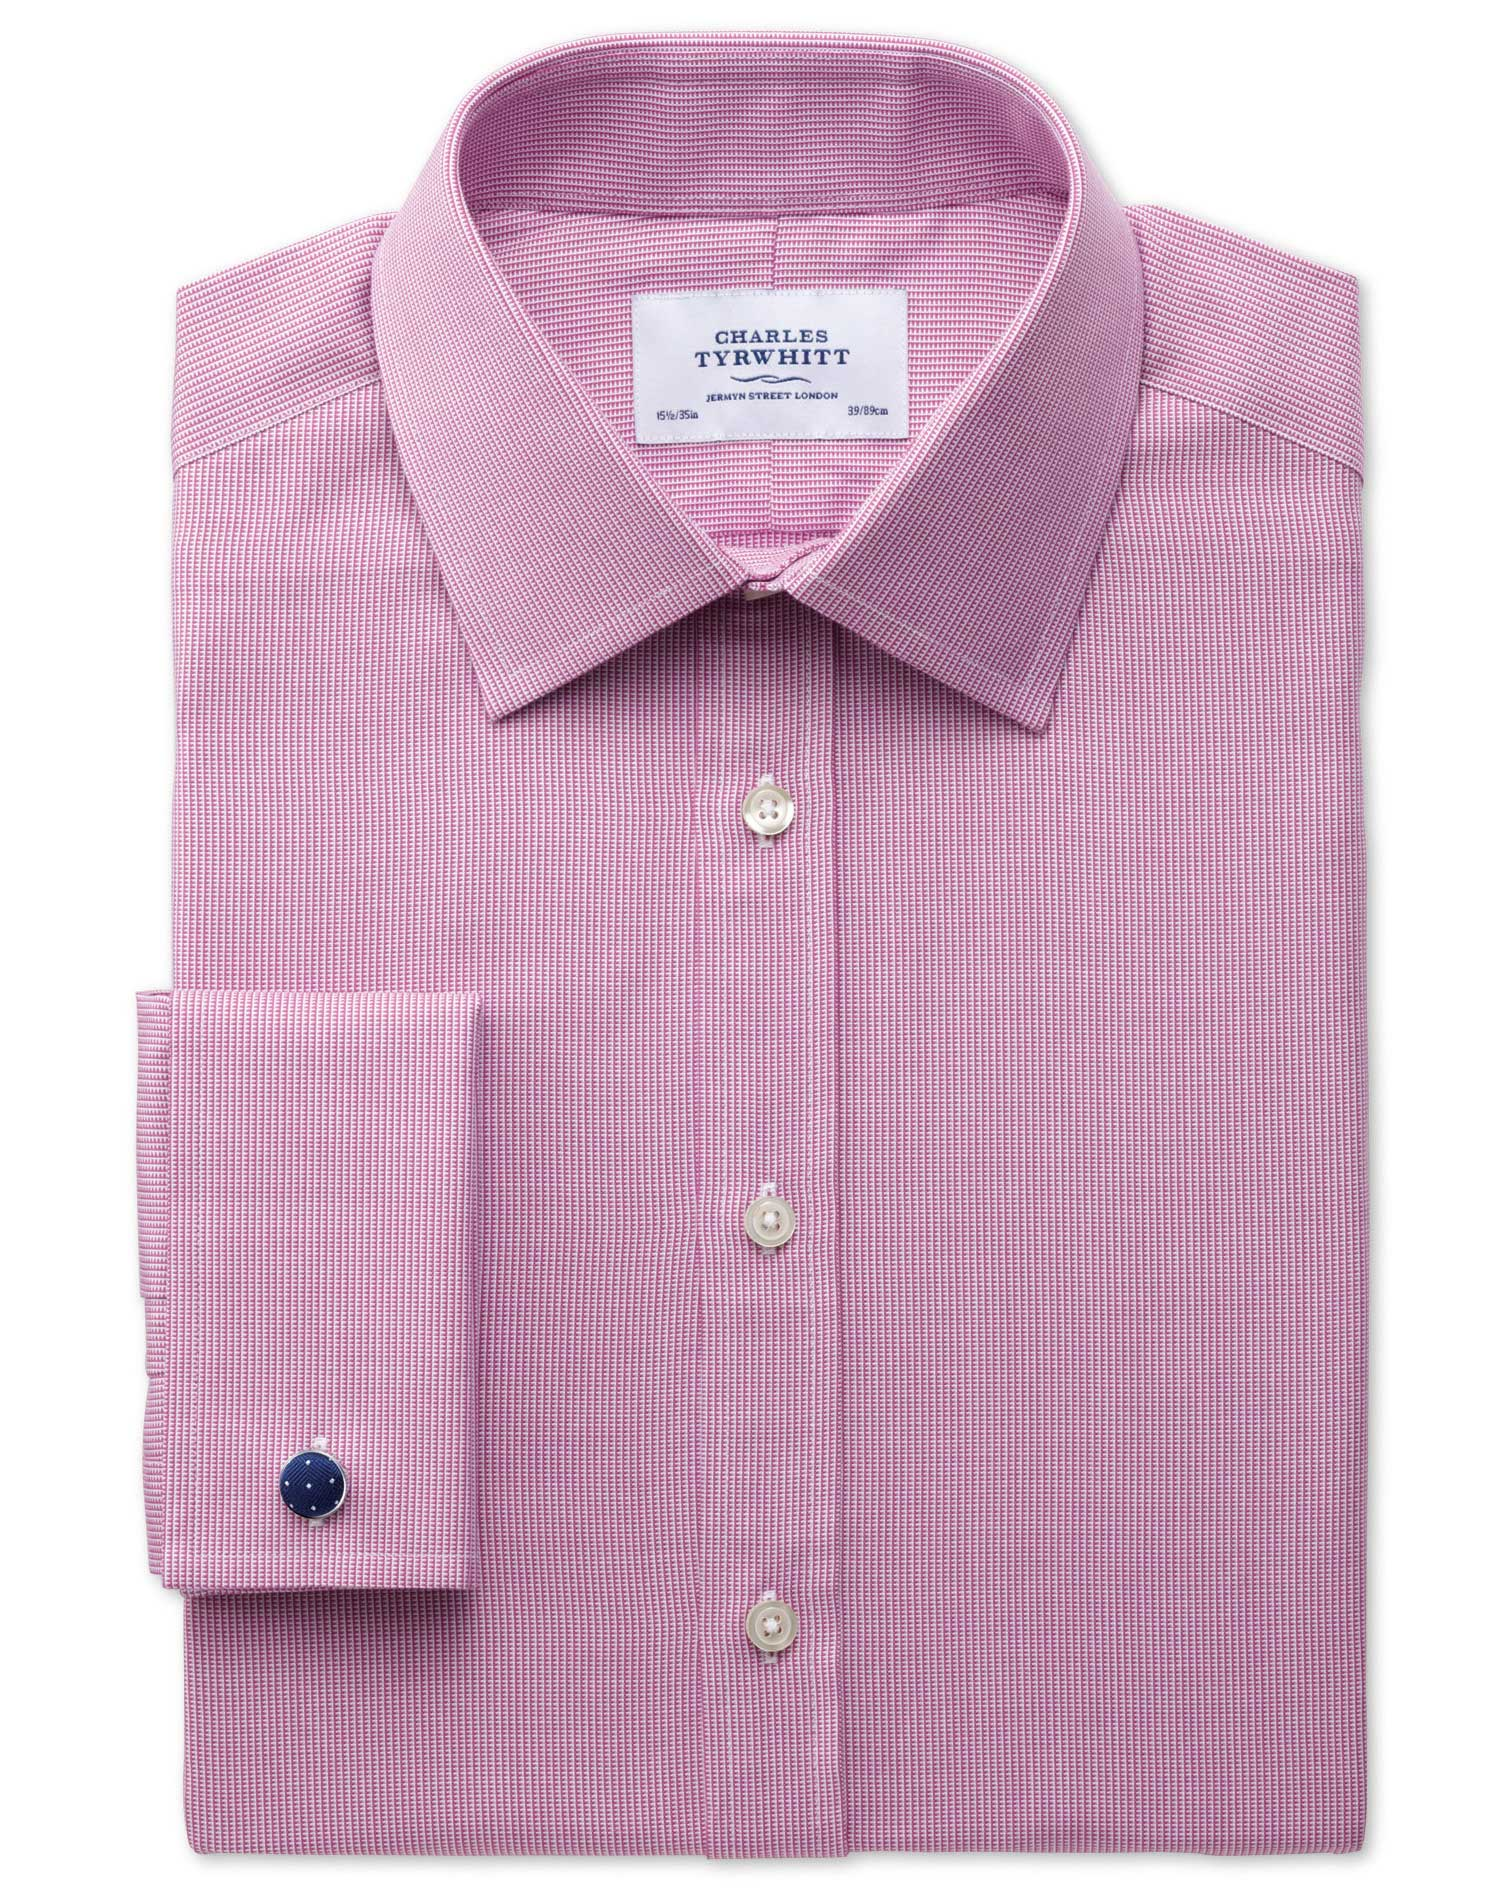 Classic Fit Oxford Magenta Cotton Formal Shirt Single Cuff Size 16.5/38 by Charles Tyrwhitt